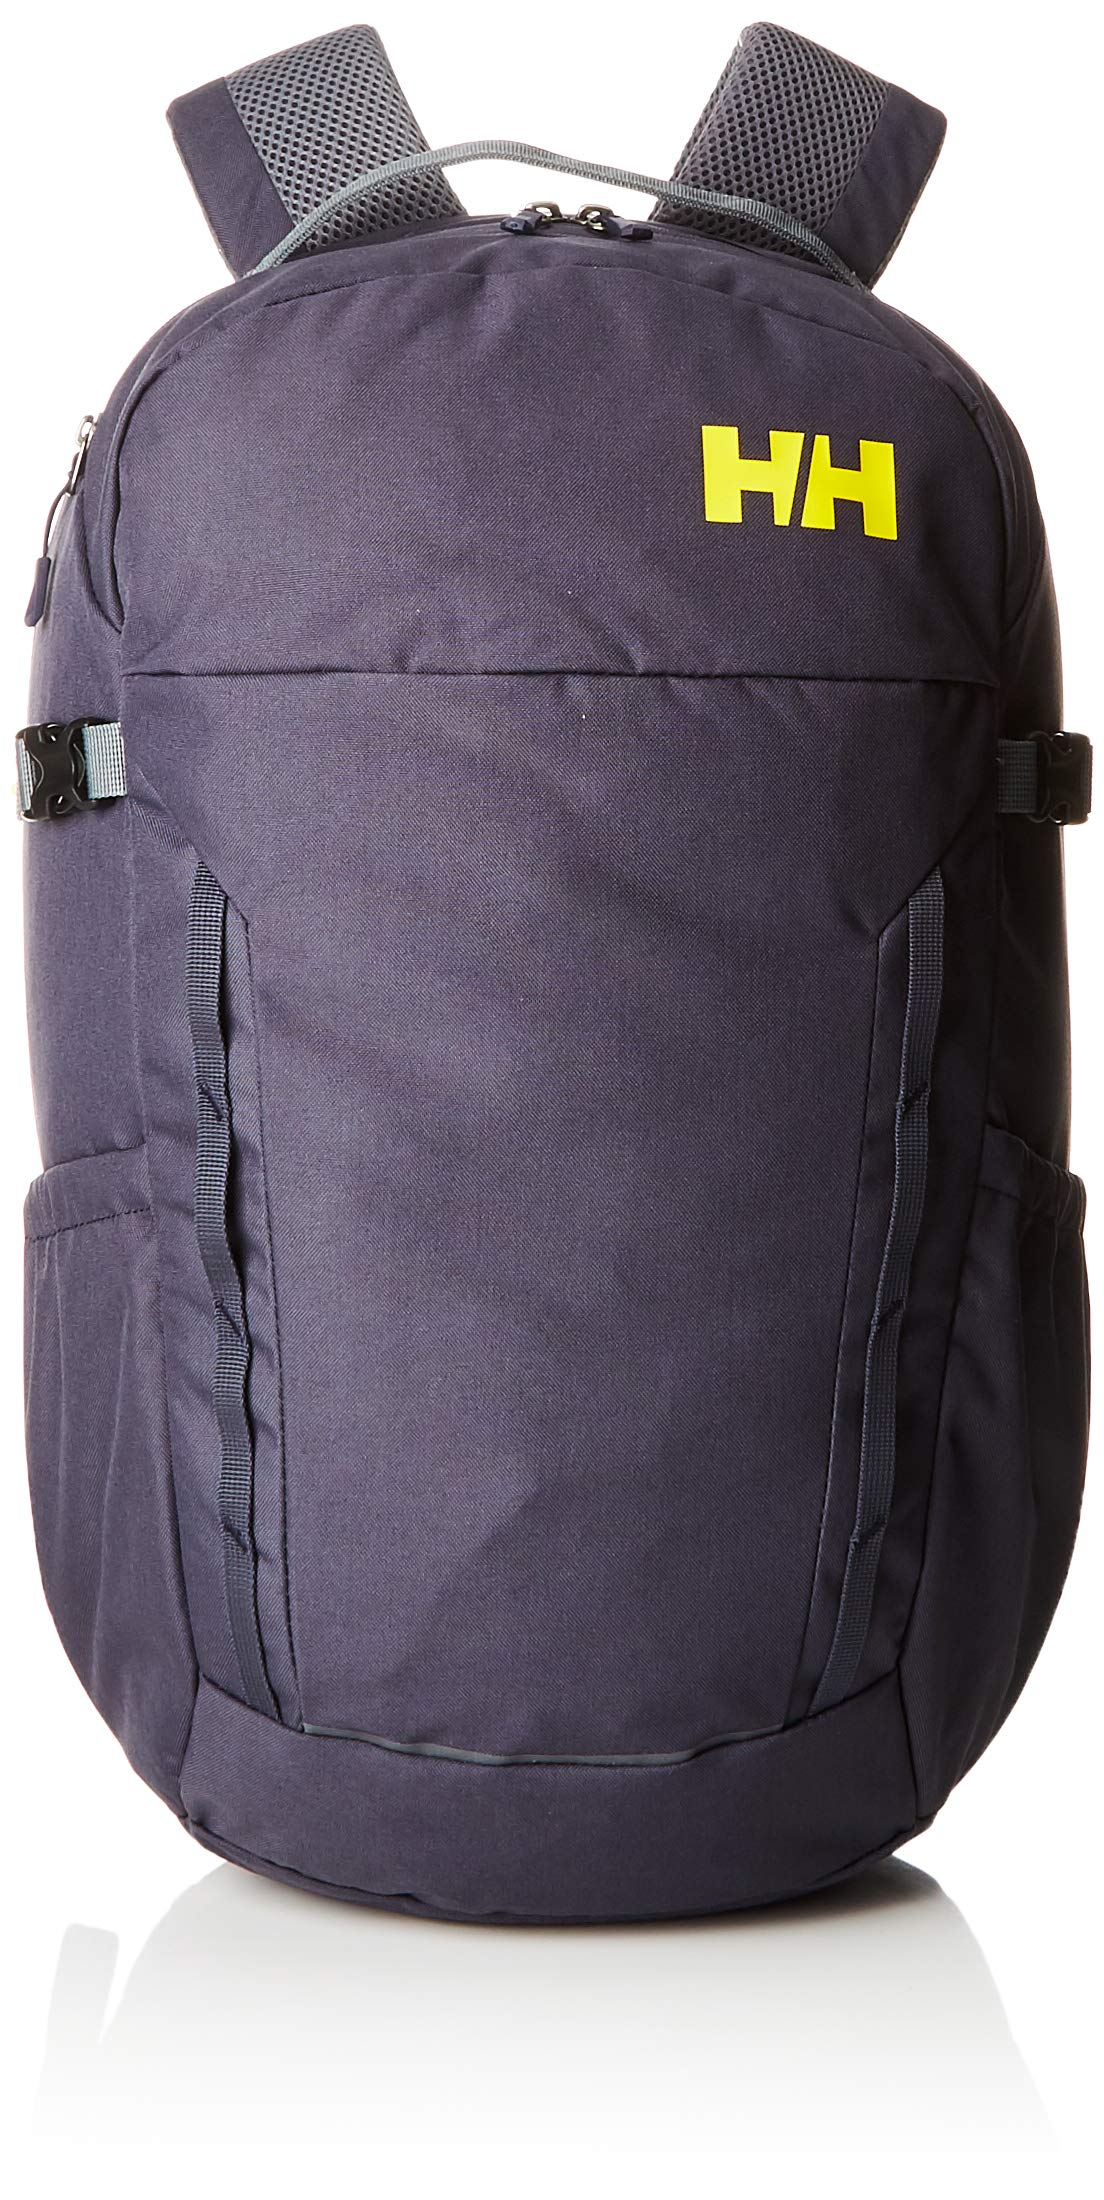 Helly Hansen Loke Backpack Mochila, Unisex, Azul (Graphite Blue), 25L